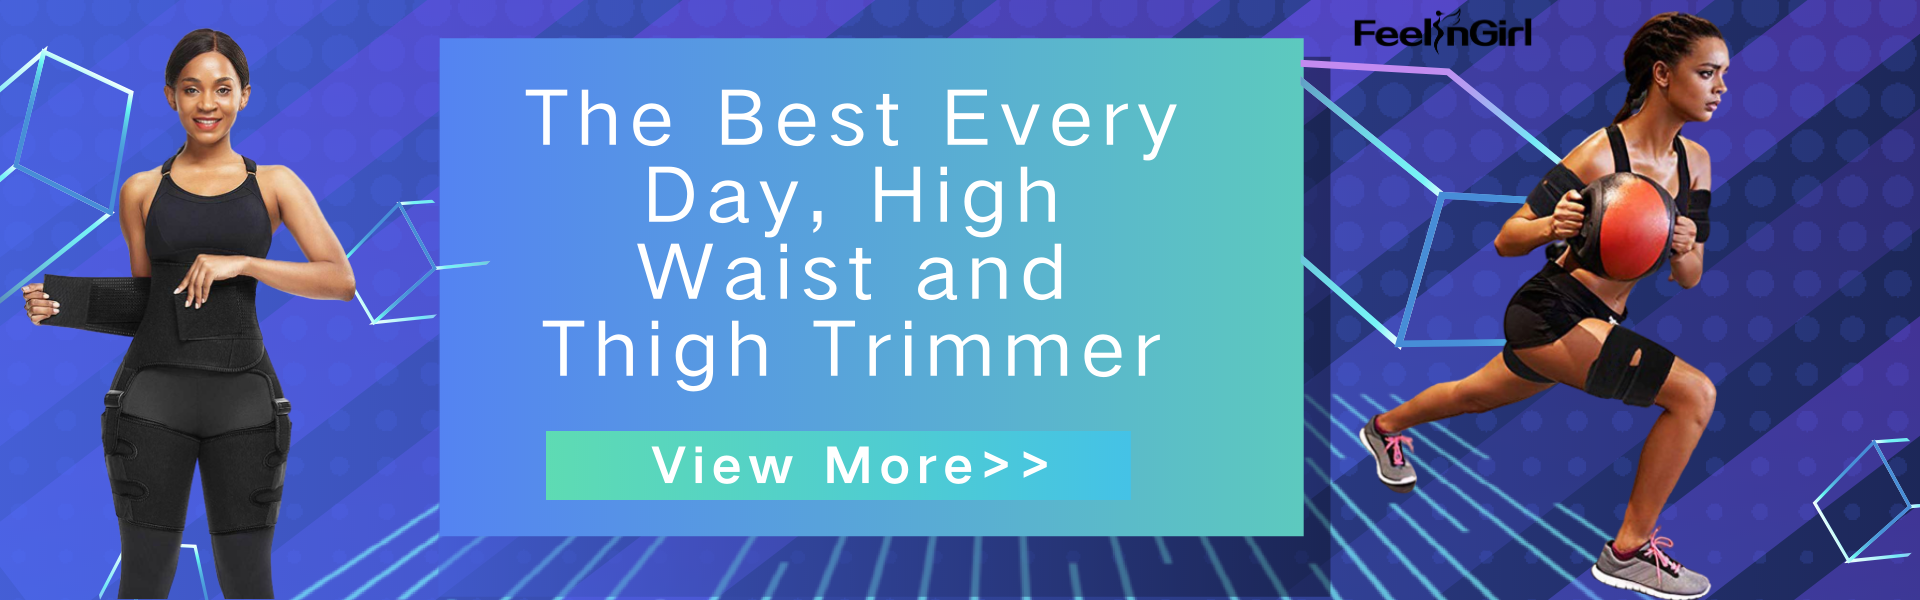 The Best Every Day, High Waist and Thigh Trimmer